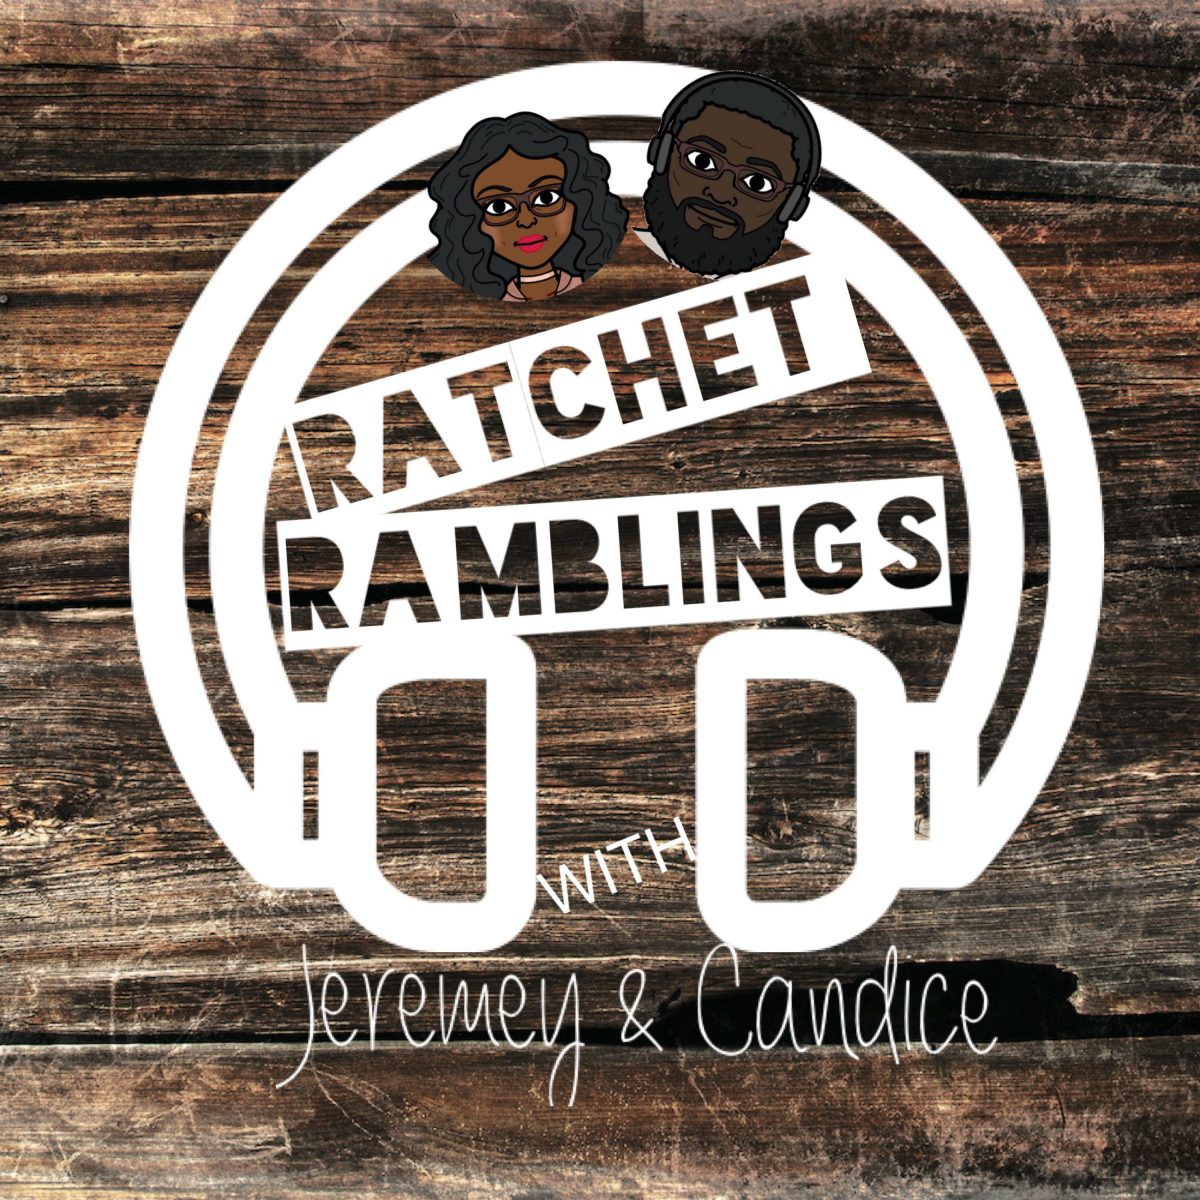 Ratchet Ramblings Episode 26: Now Check That!